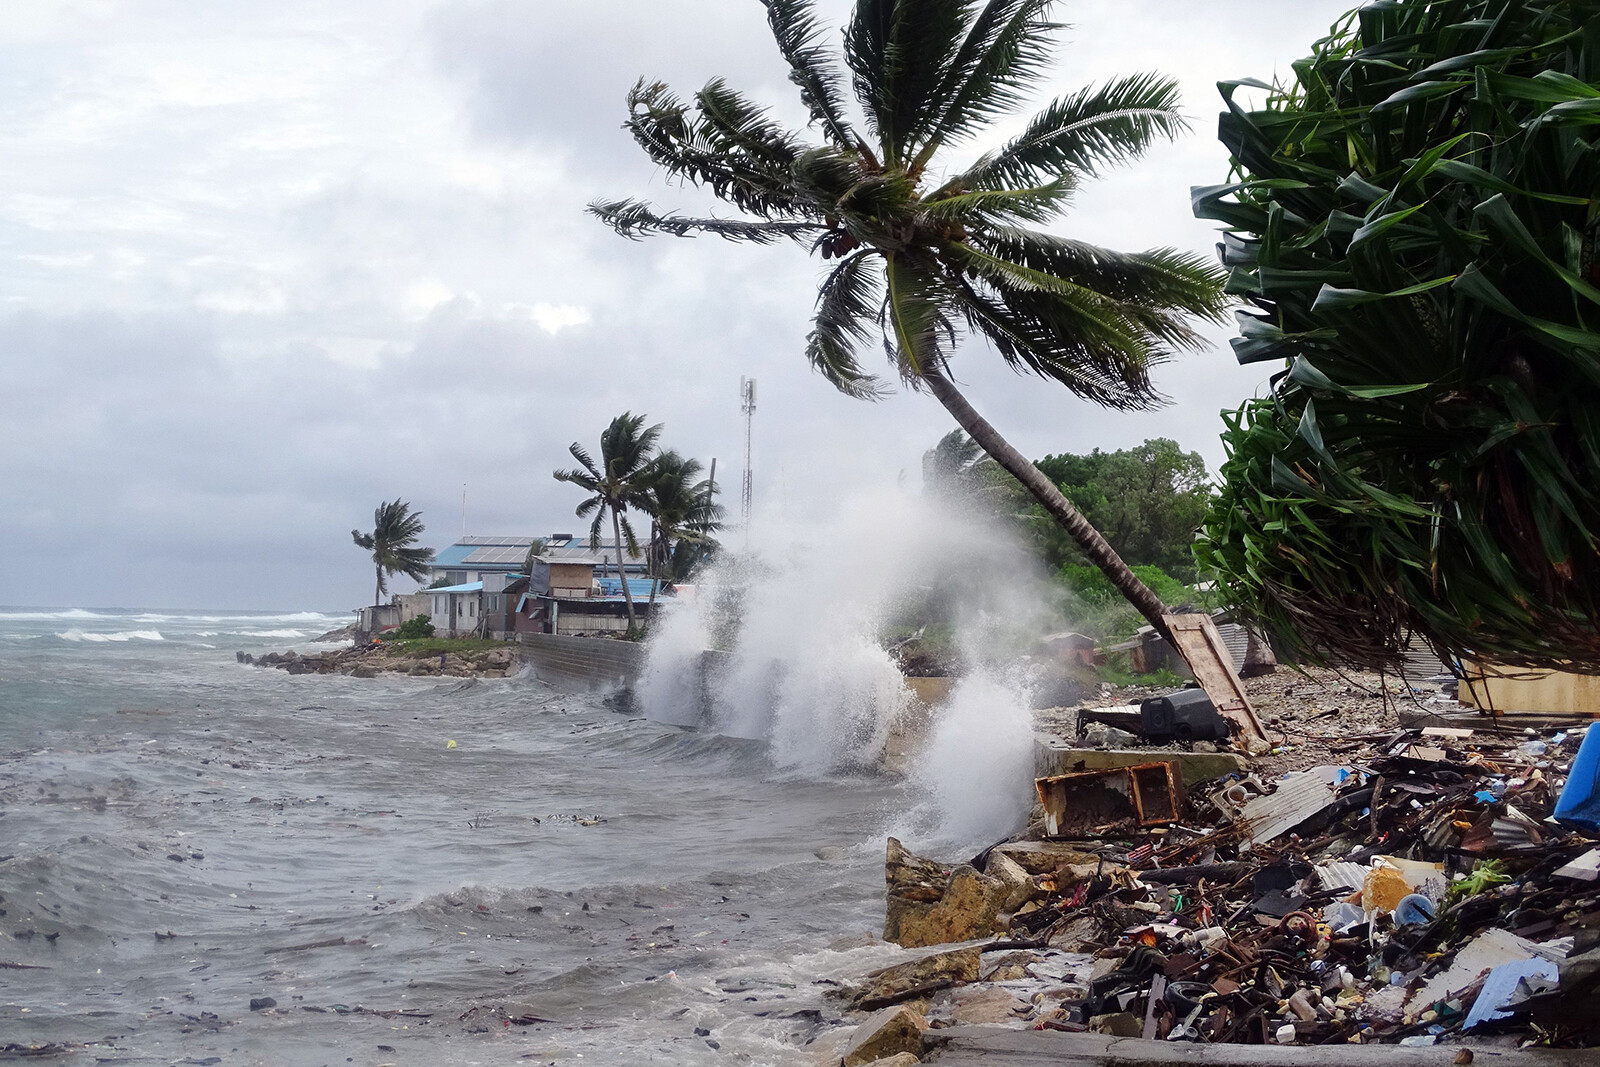 It's 'inescapable': Pacific Islanders have tried to flee the climate crisis, only to face new threats